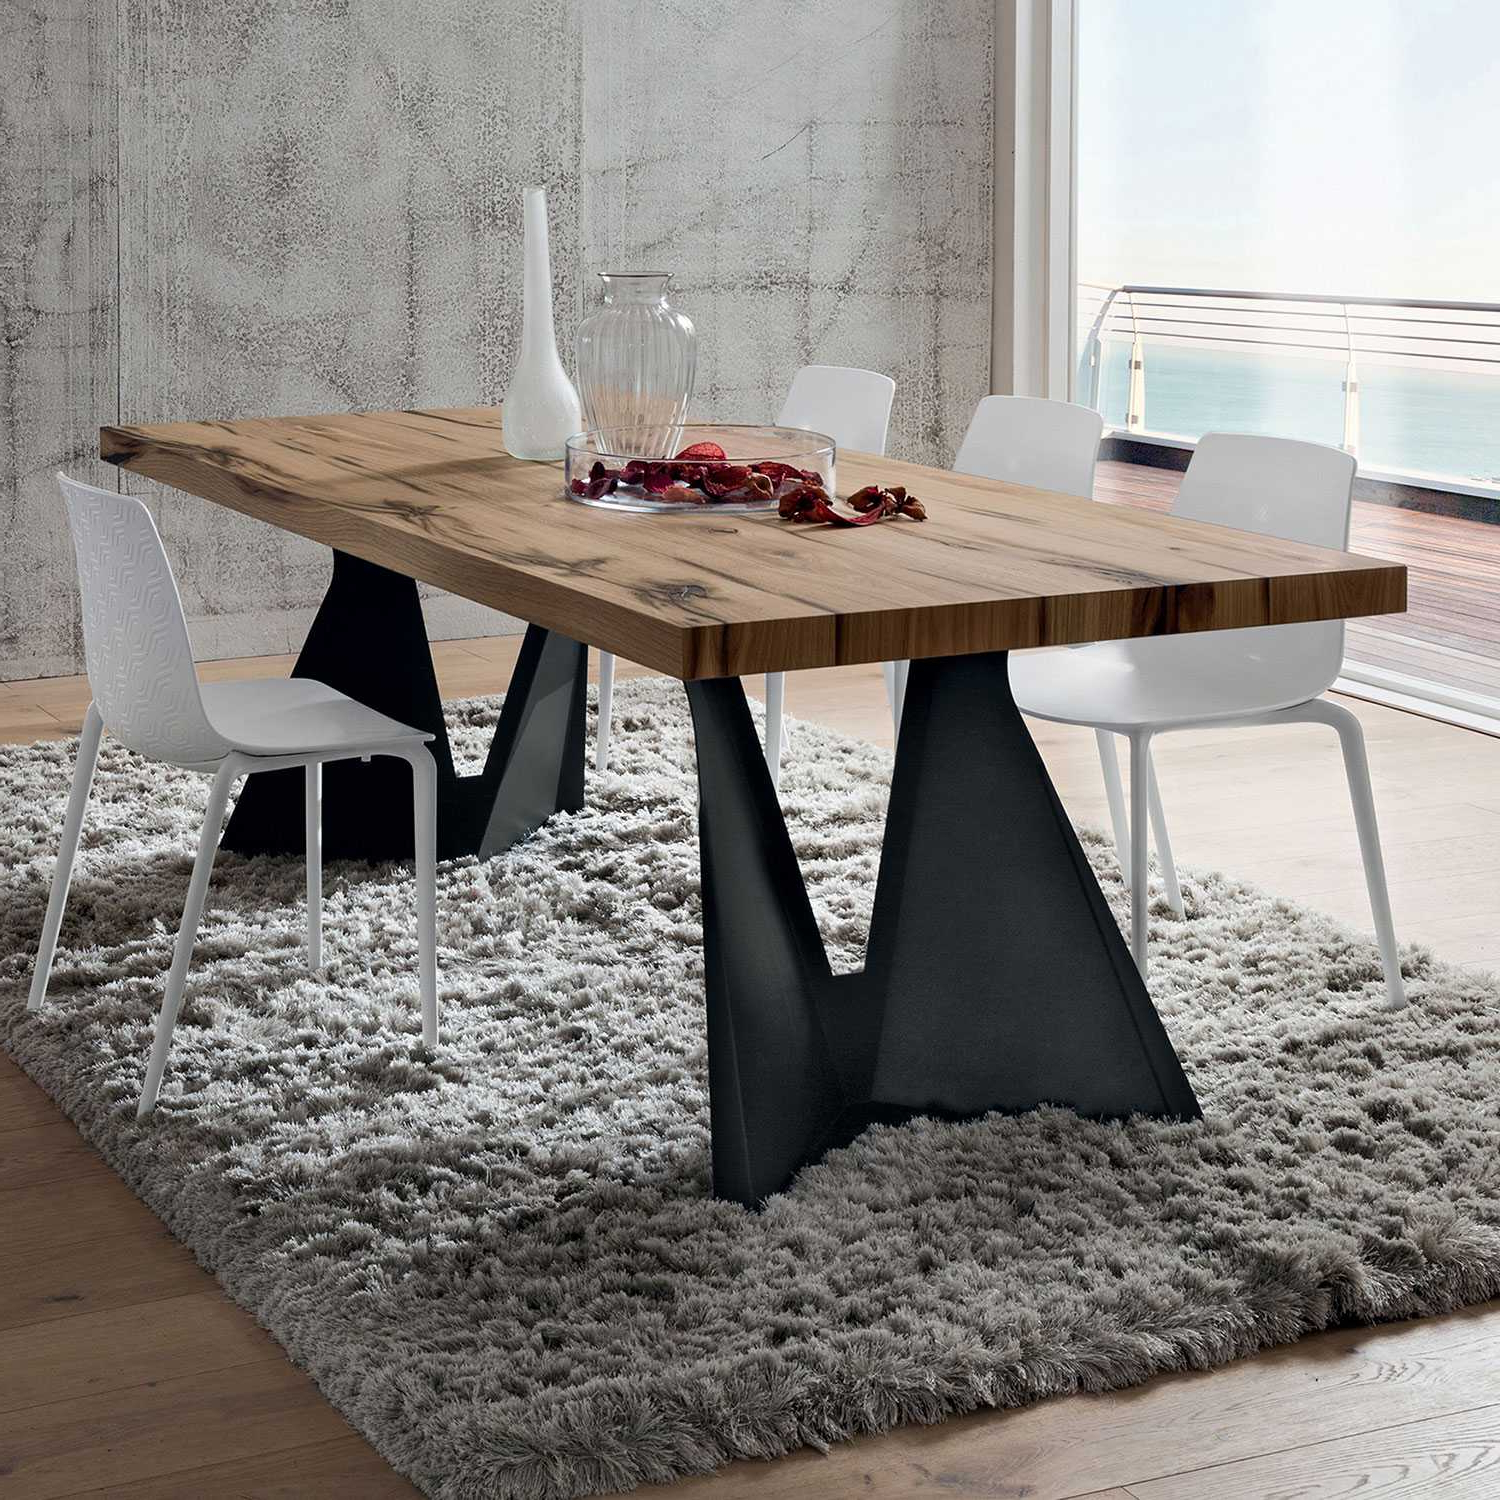 Most Recent Wood Top Dining Tables In Jeor (View 20 of 25)